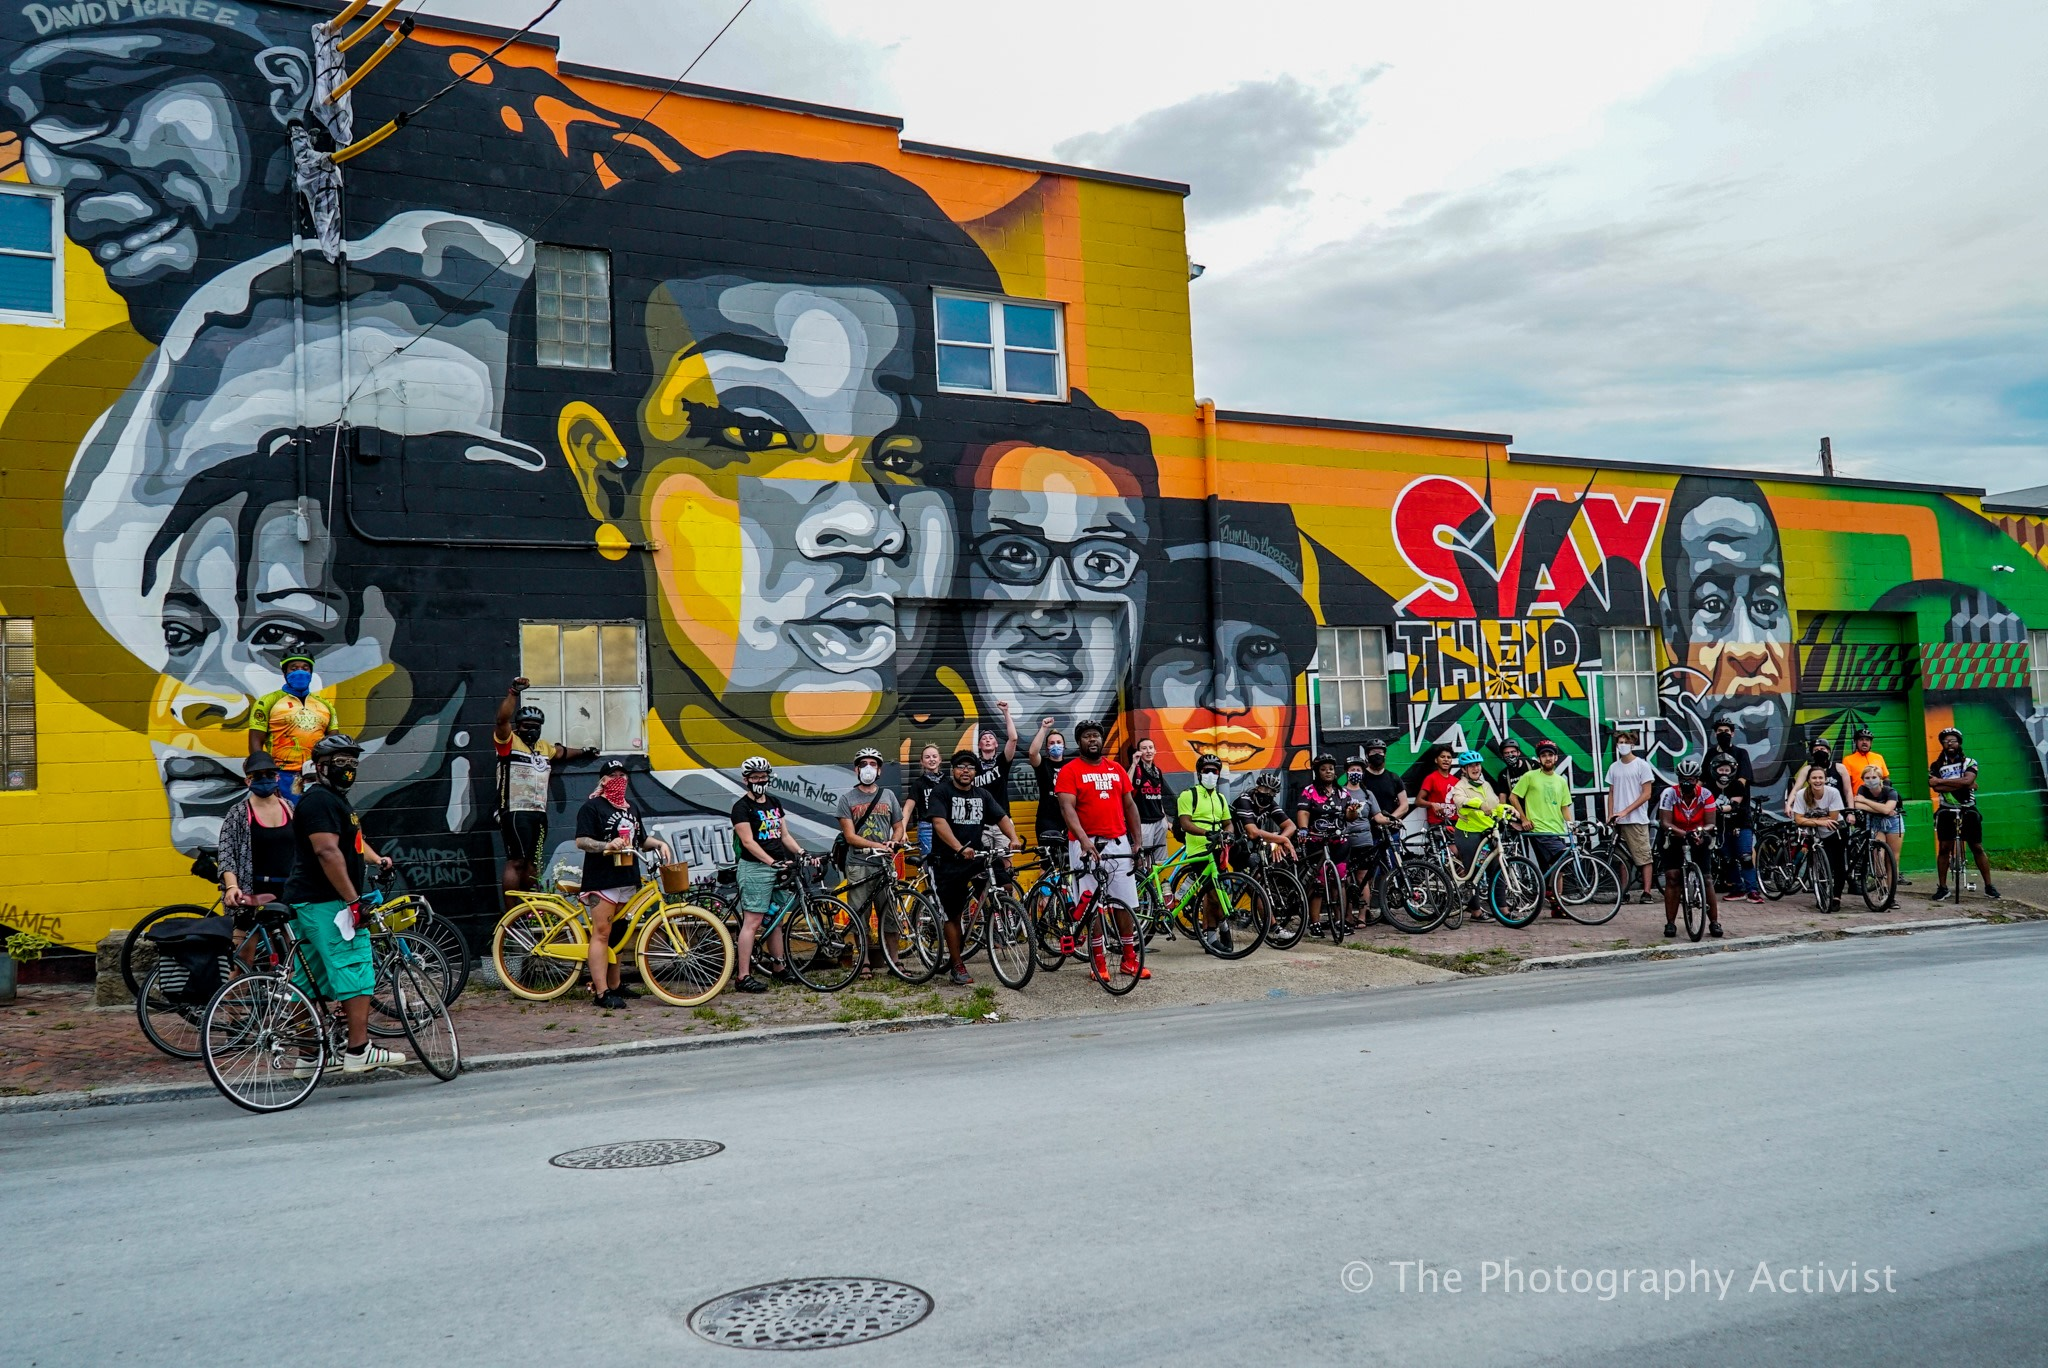 Louisville Bicyclists Took To The Streets For Breonna Taylor With 'Say Her Name' Bike Ride